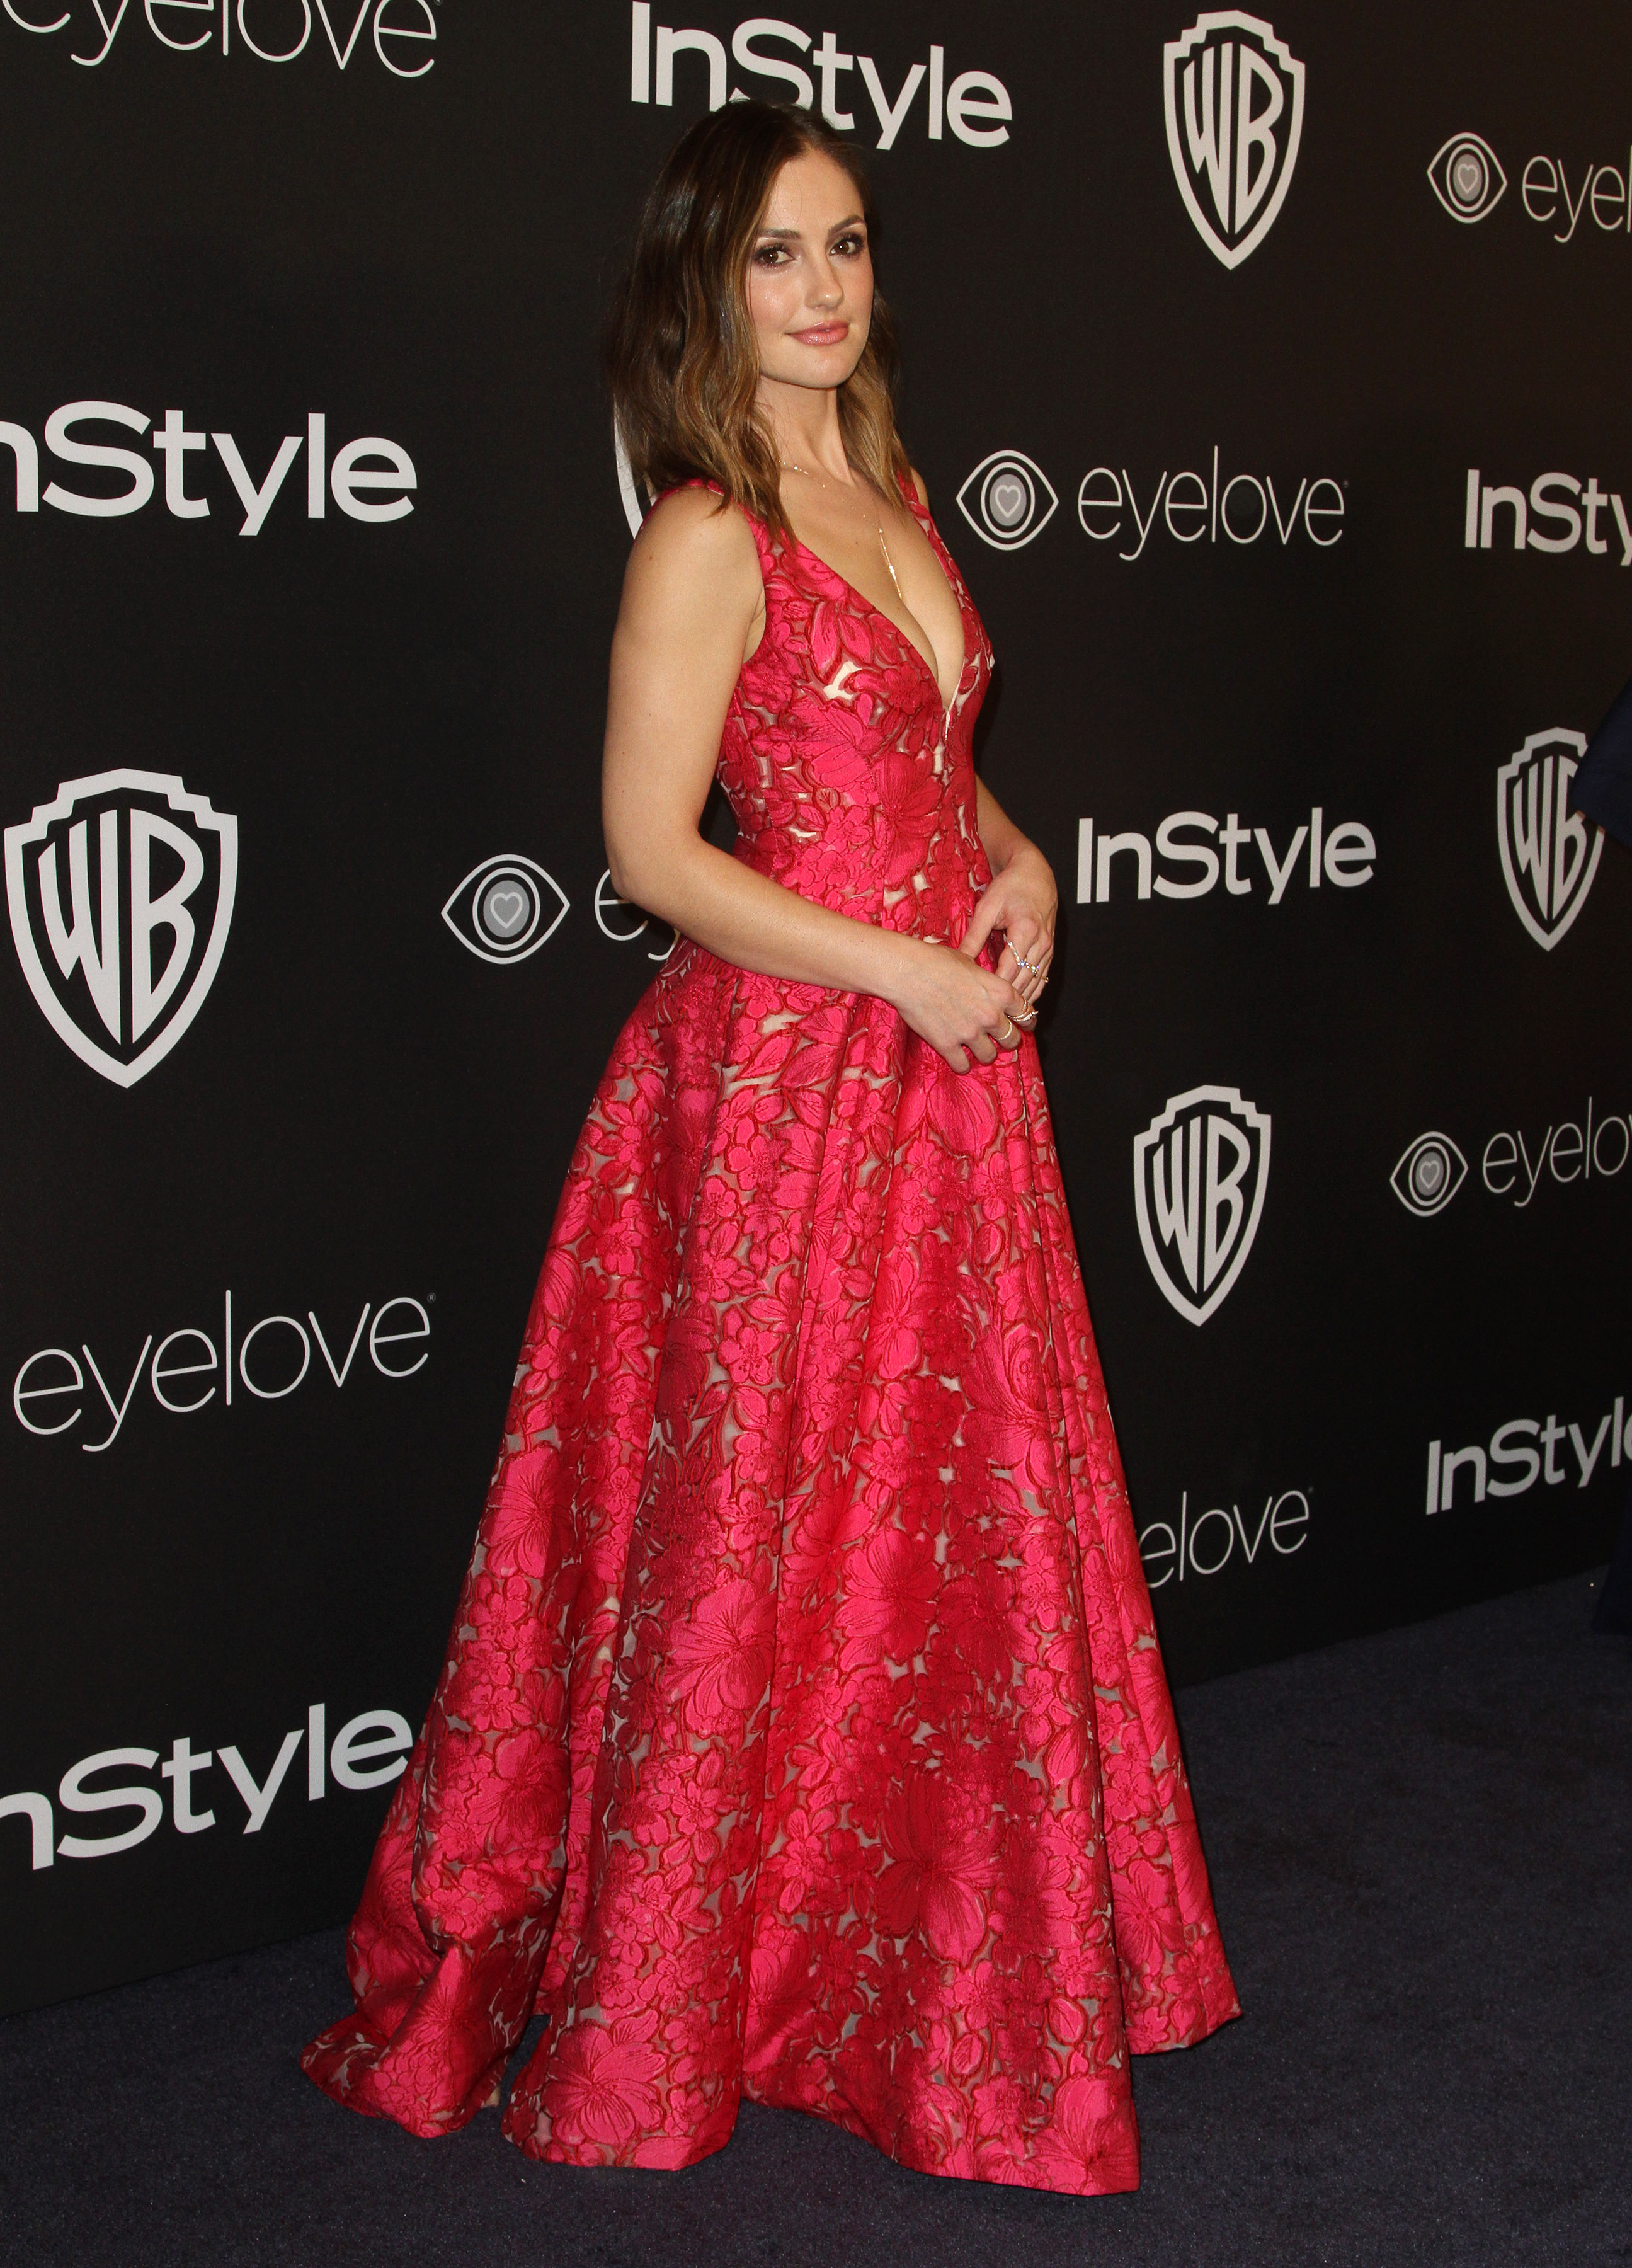 InStyle & Warner Bros. Pictures Golden Globes After Party 2017 held at the Beverly Hilton Hotel  Featuring: Minka Kelly Where: Los Angeles, California, United States When: 09 Jan 2017 Credit: Adriana M. Barraza/WENN.com